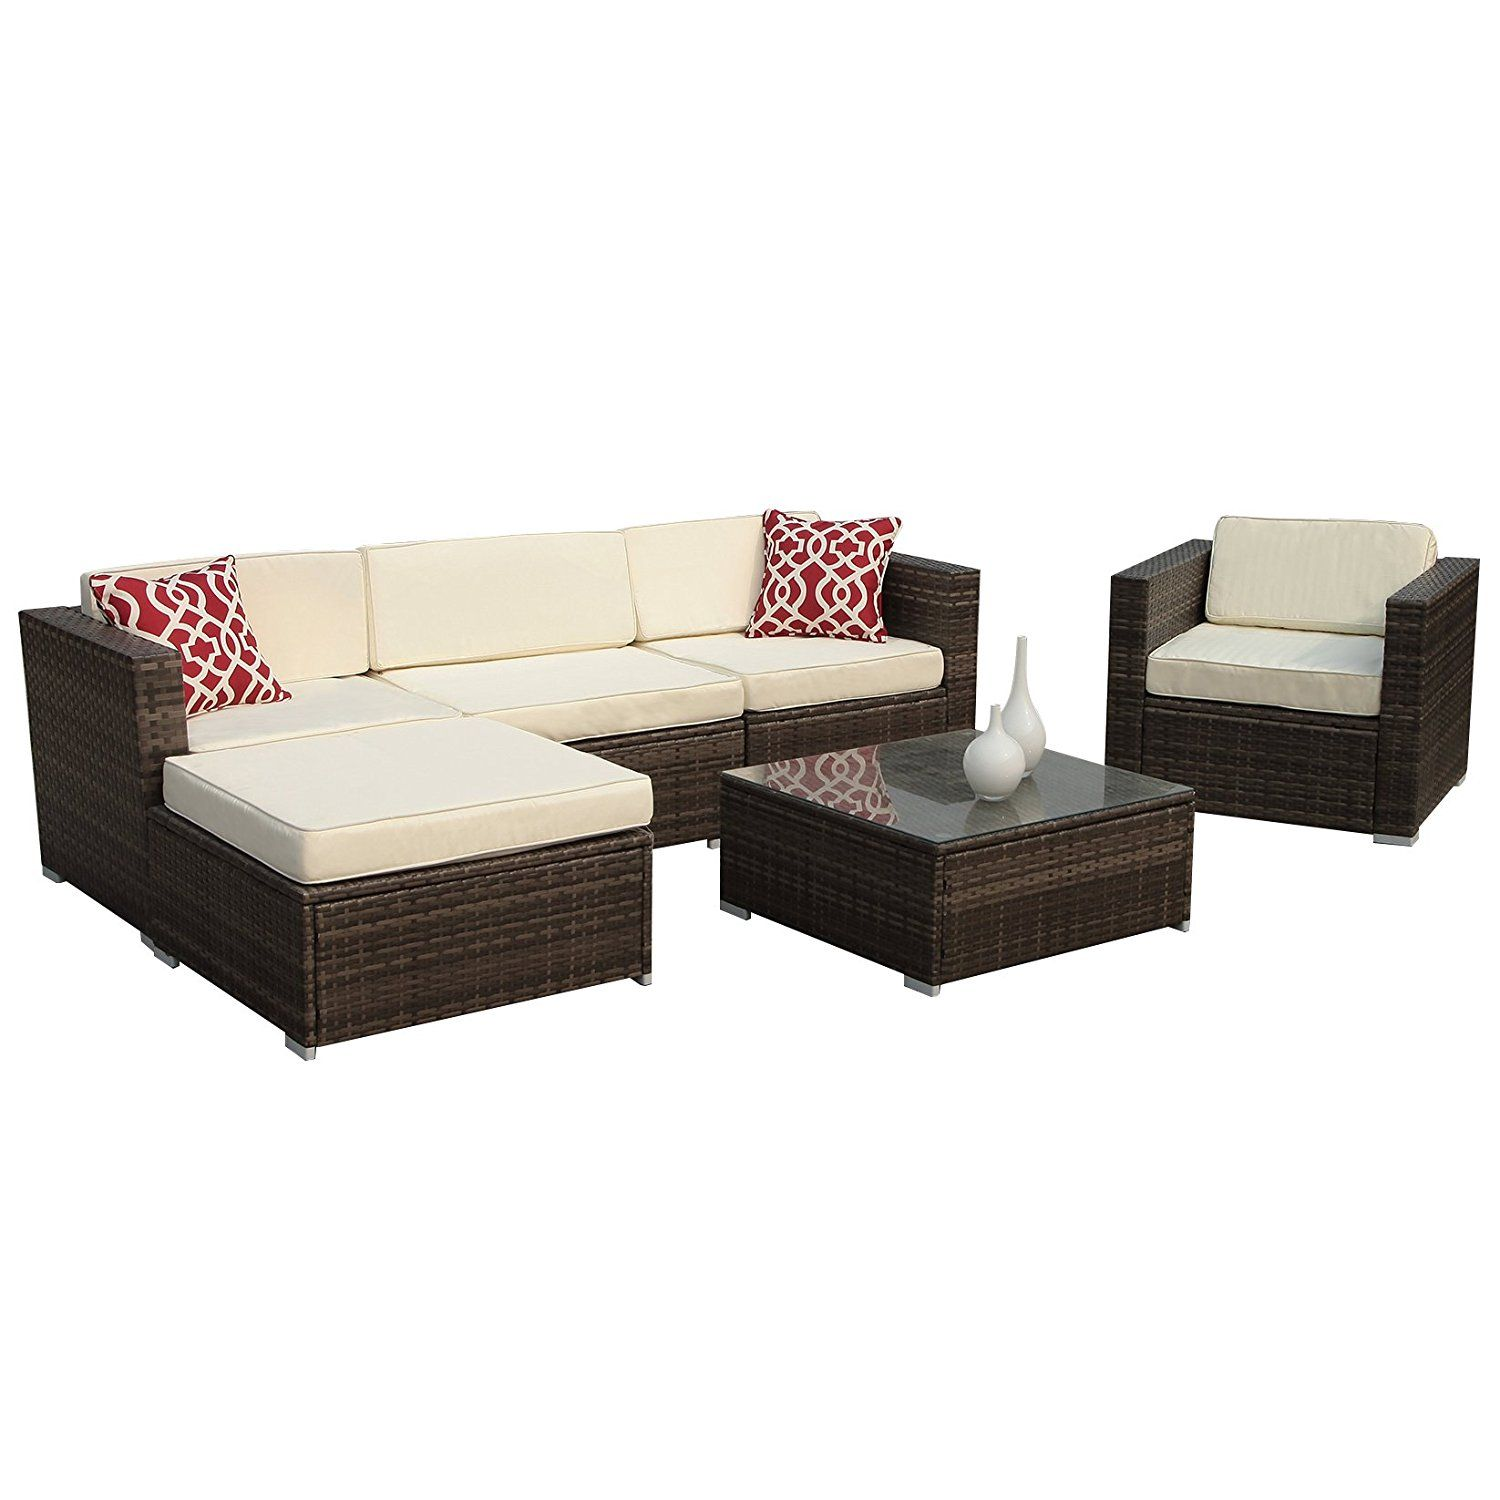 Amazon Com Patioroma 6pc Outdoor Rattan Sectional Furniture Set